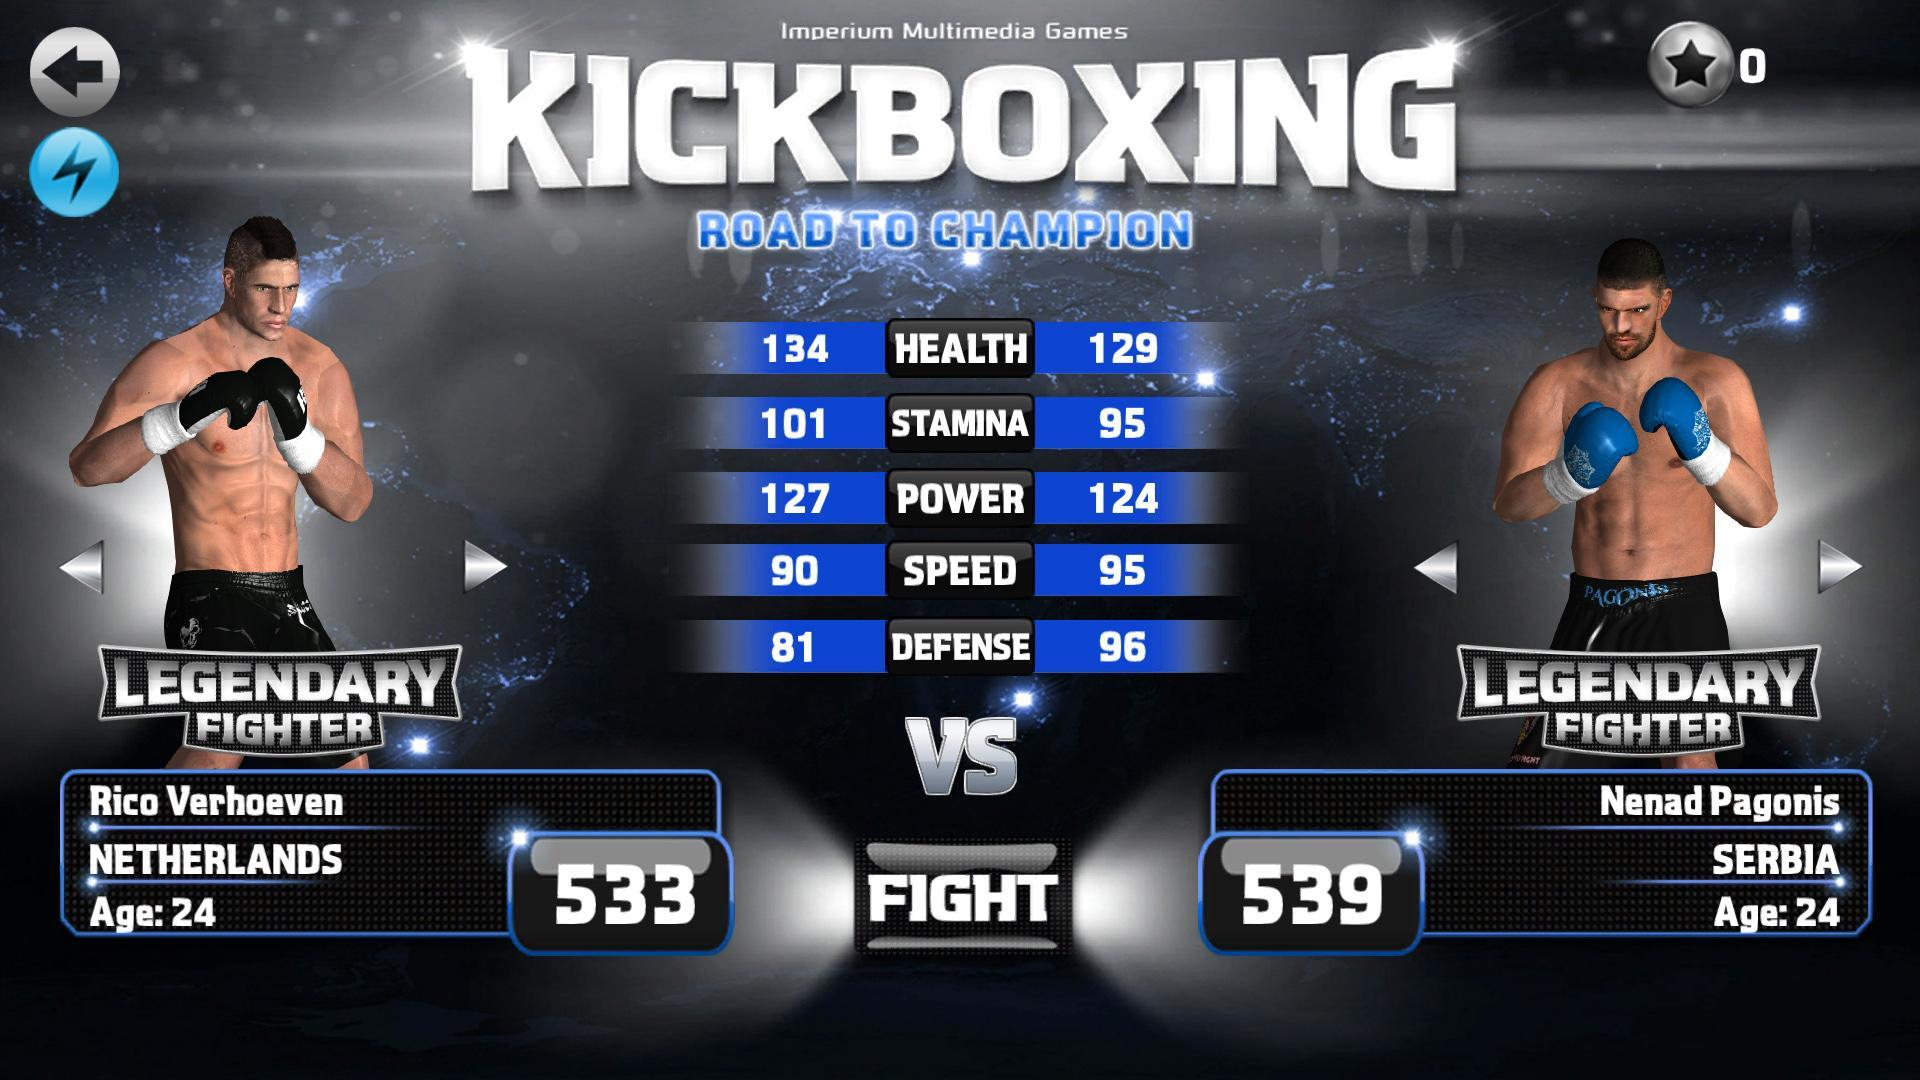 Kickboxing Fighting - RTC for Android - APK Download